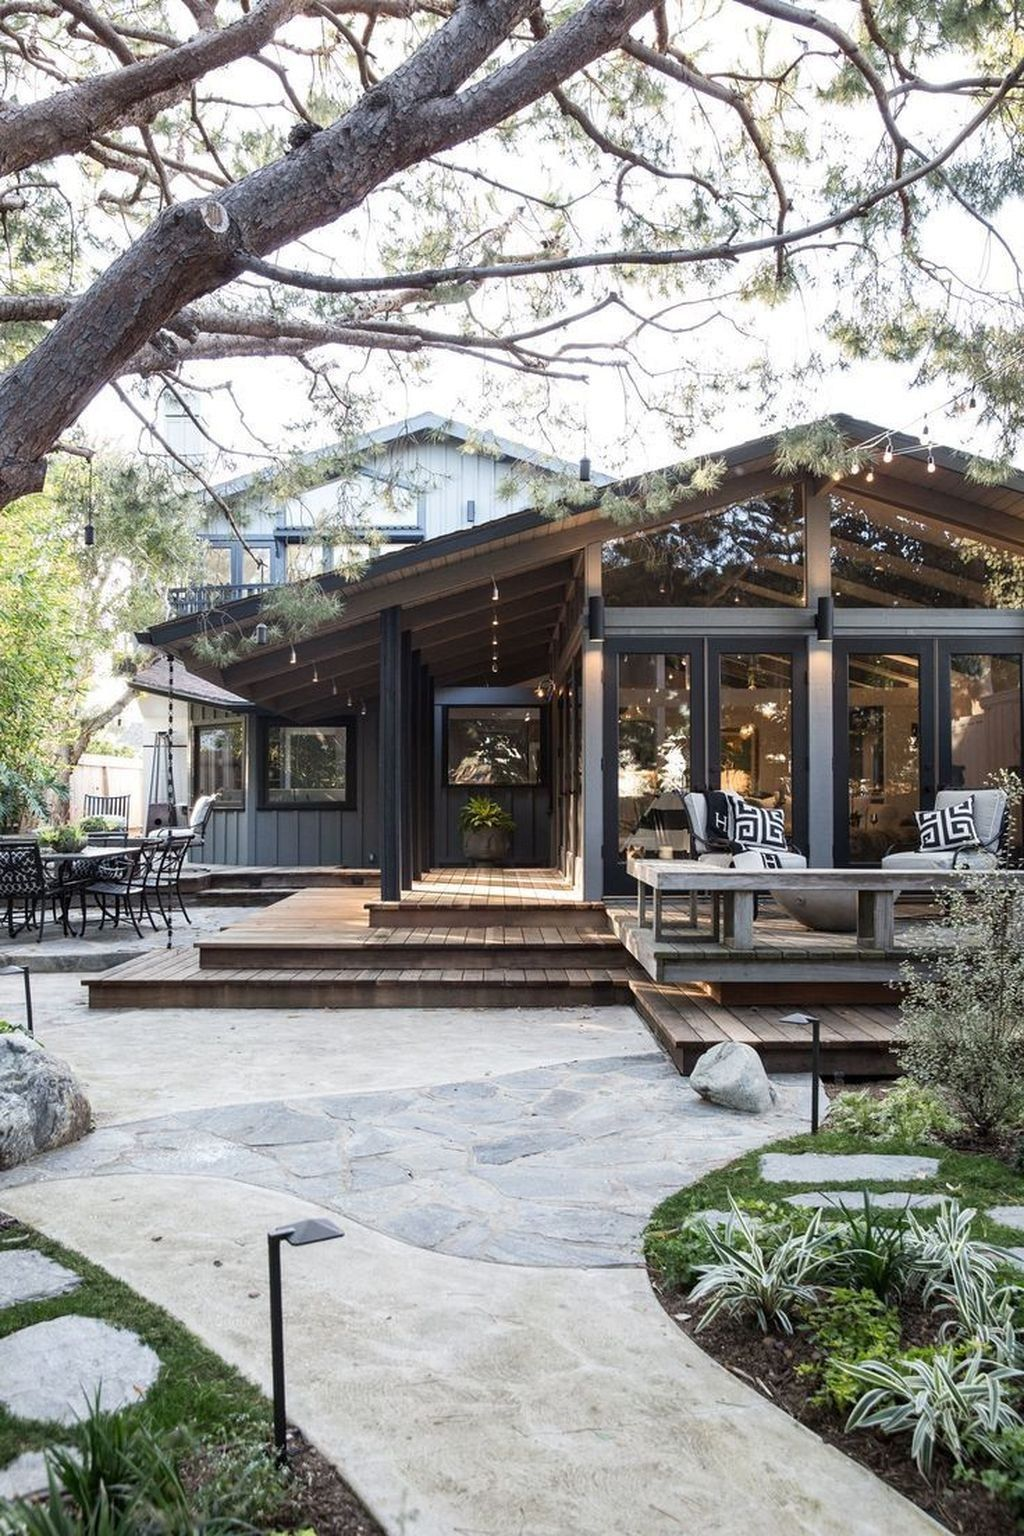 20 Unbelievably Beautiful Contemporary Home Exterior Designs: 37 Stunning Modern House Design Ideas